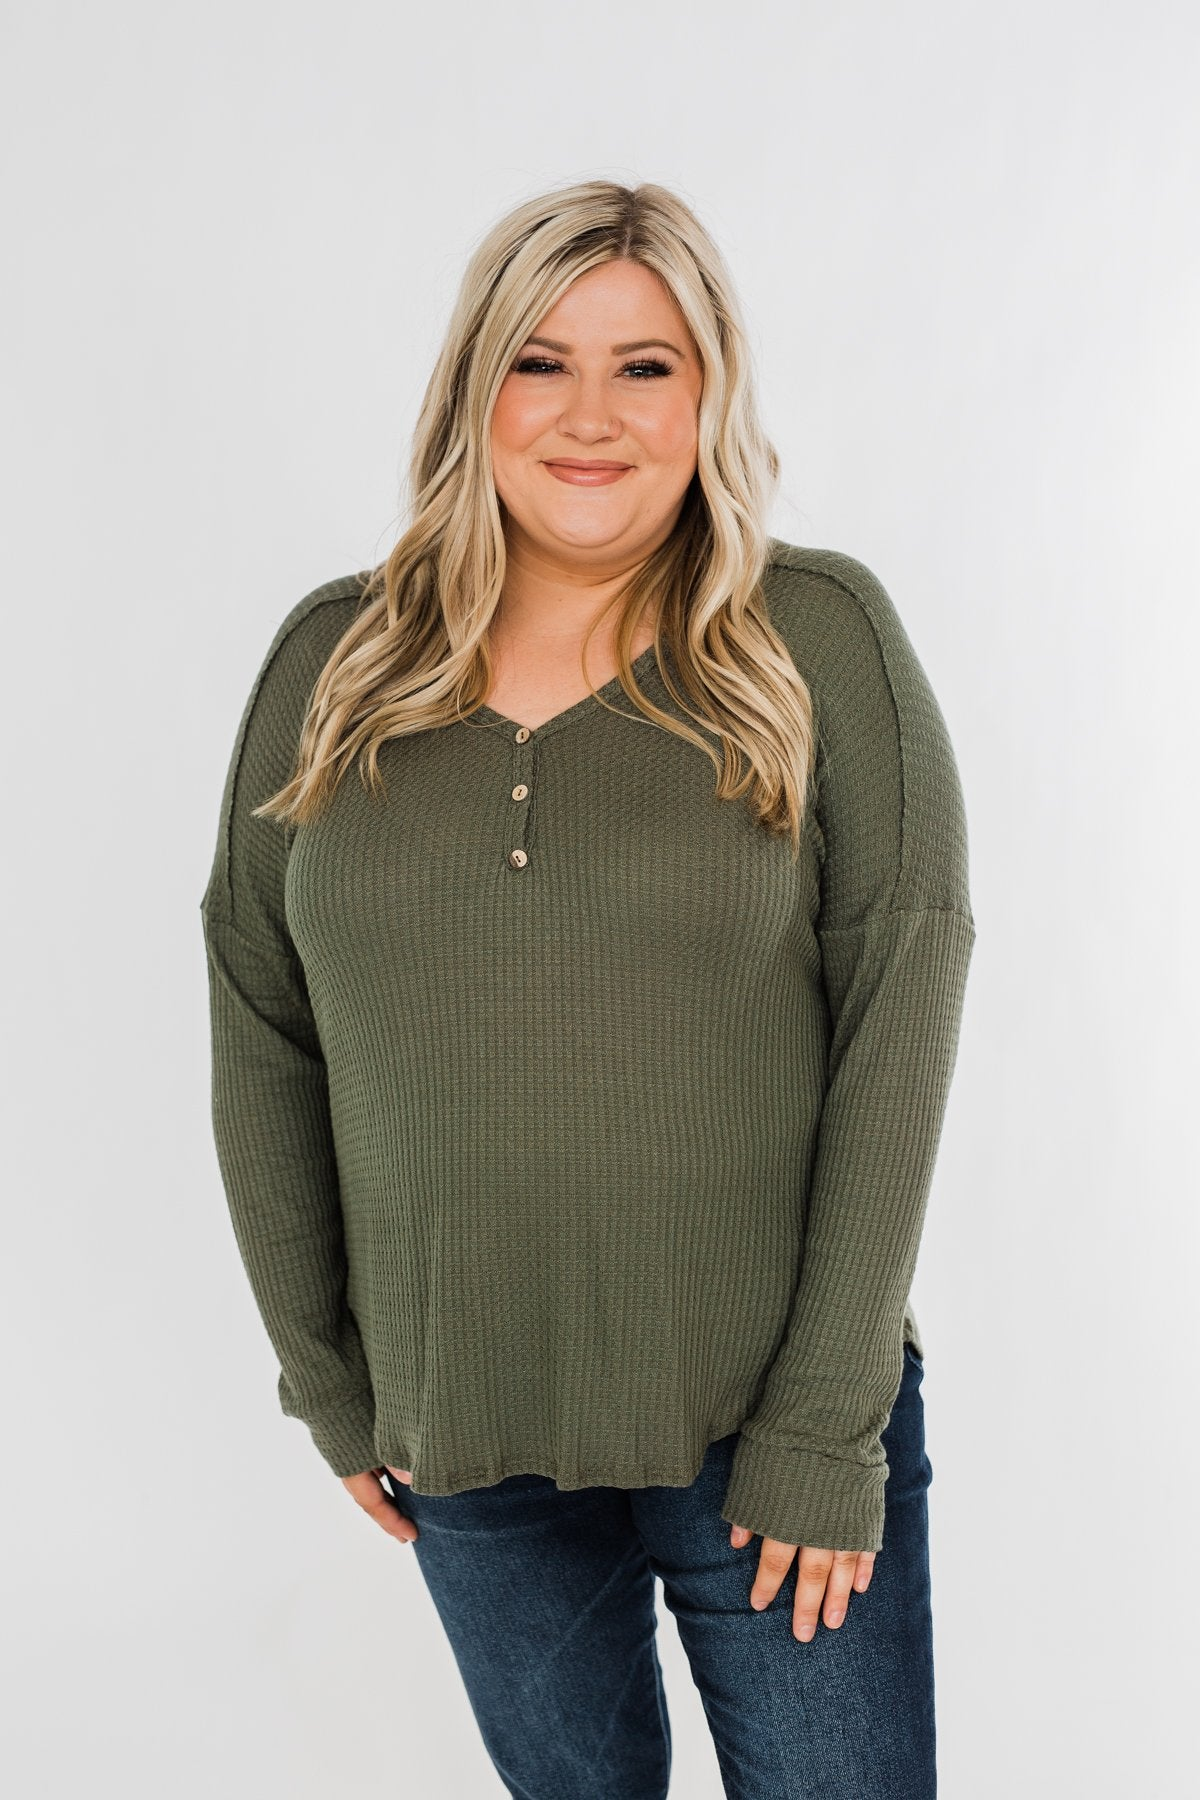 Knowing You V-Neck Thermal Top- Olive